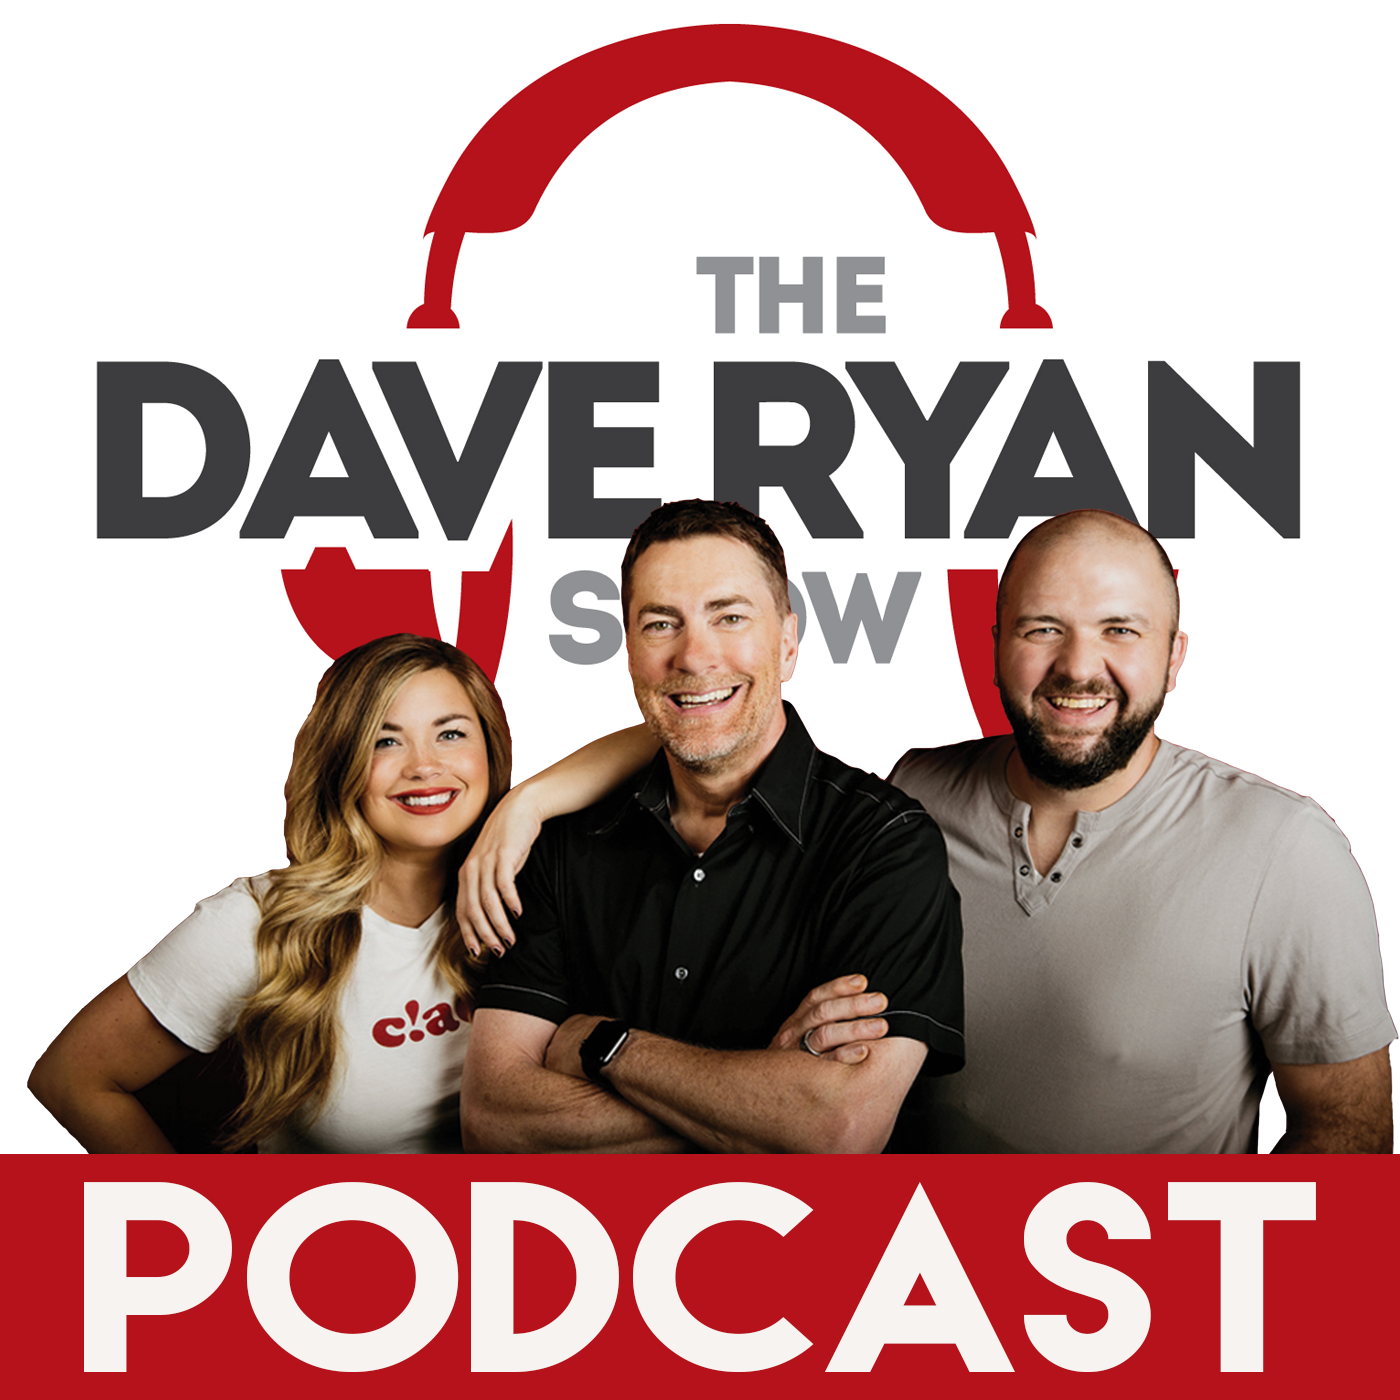 The Dave Ryan Show by 101.3 KDWB on Apple Podcasts